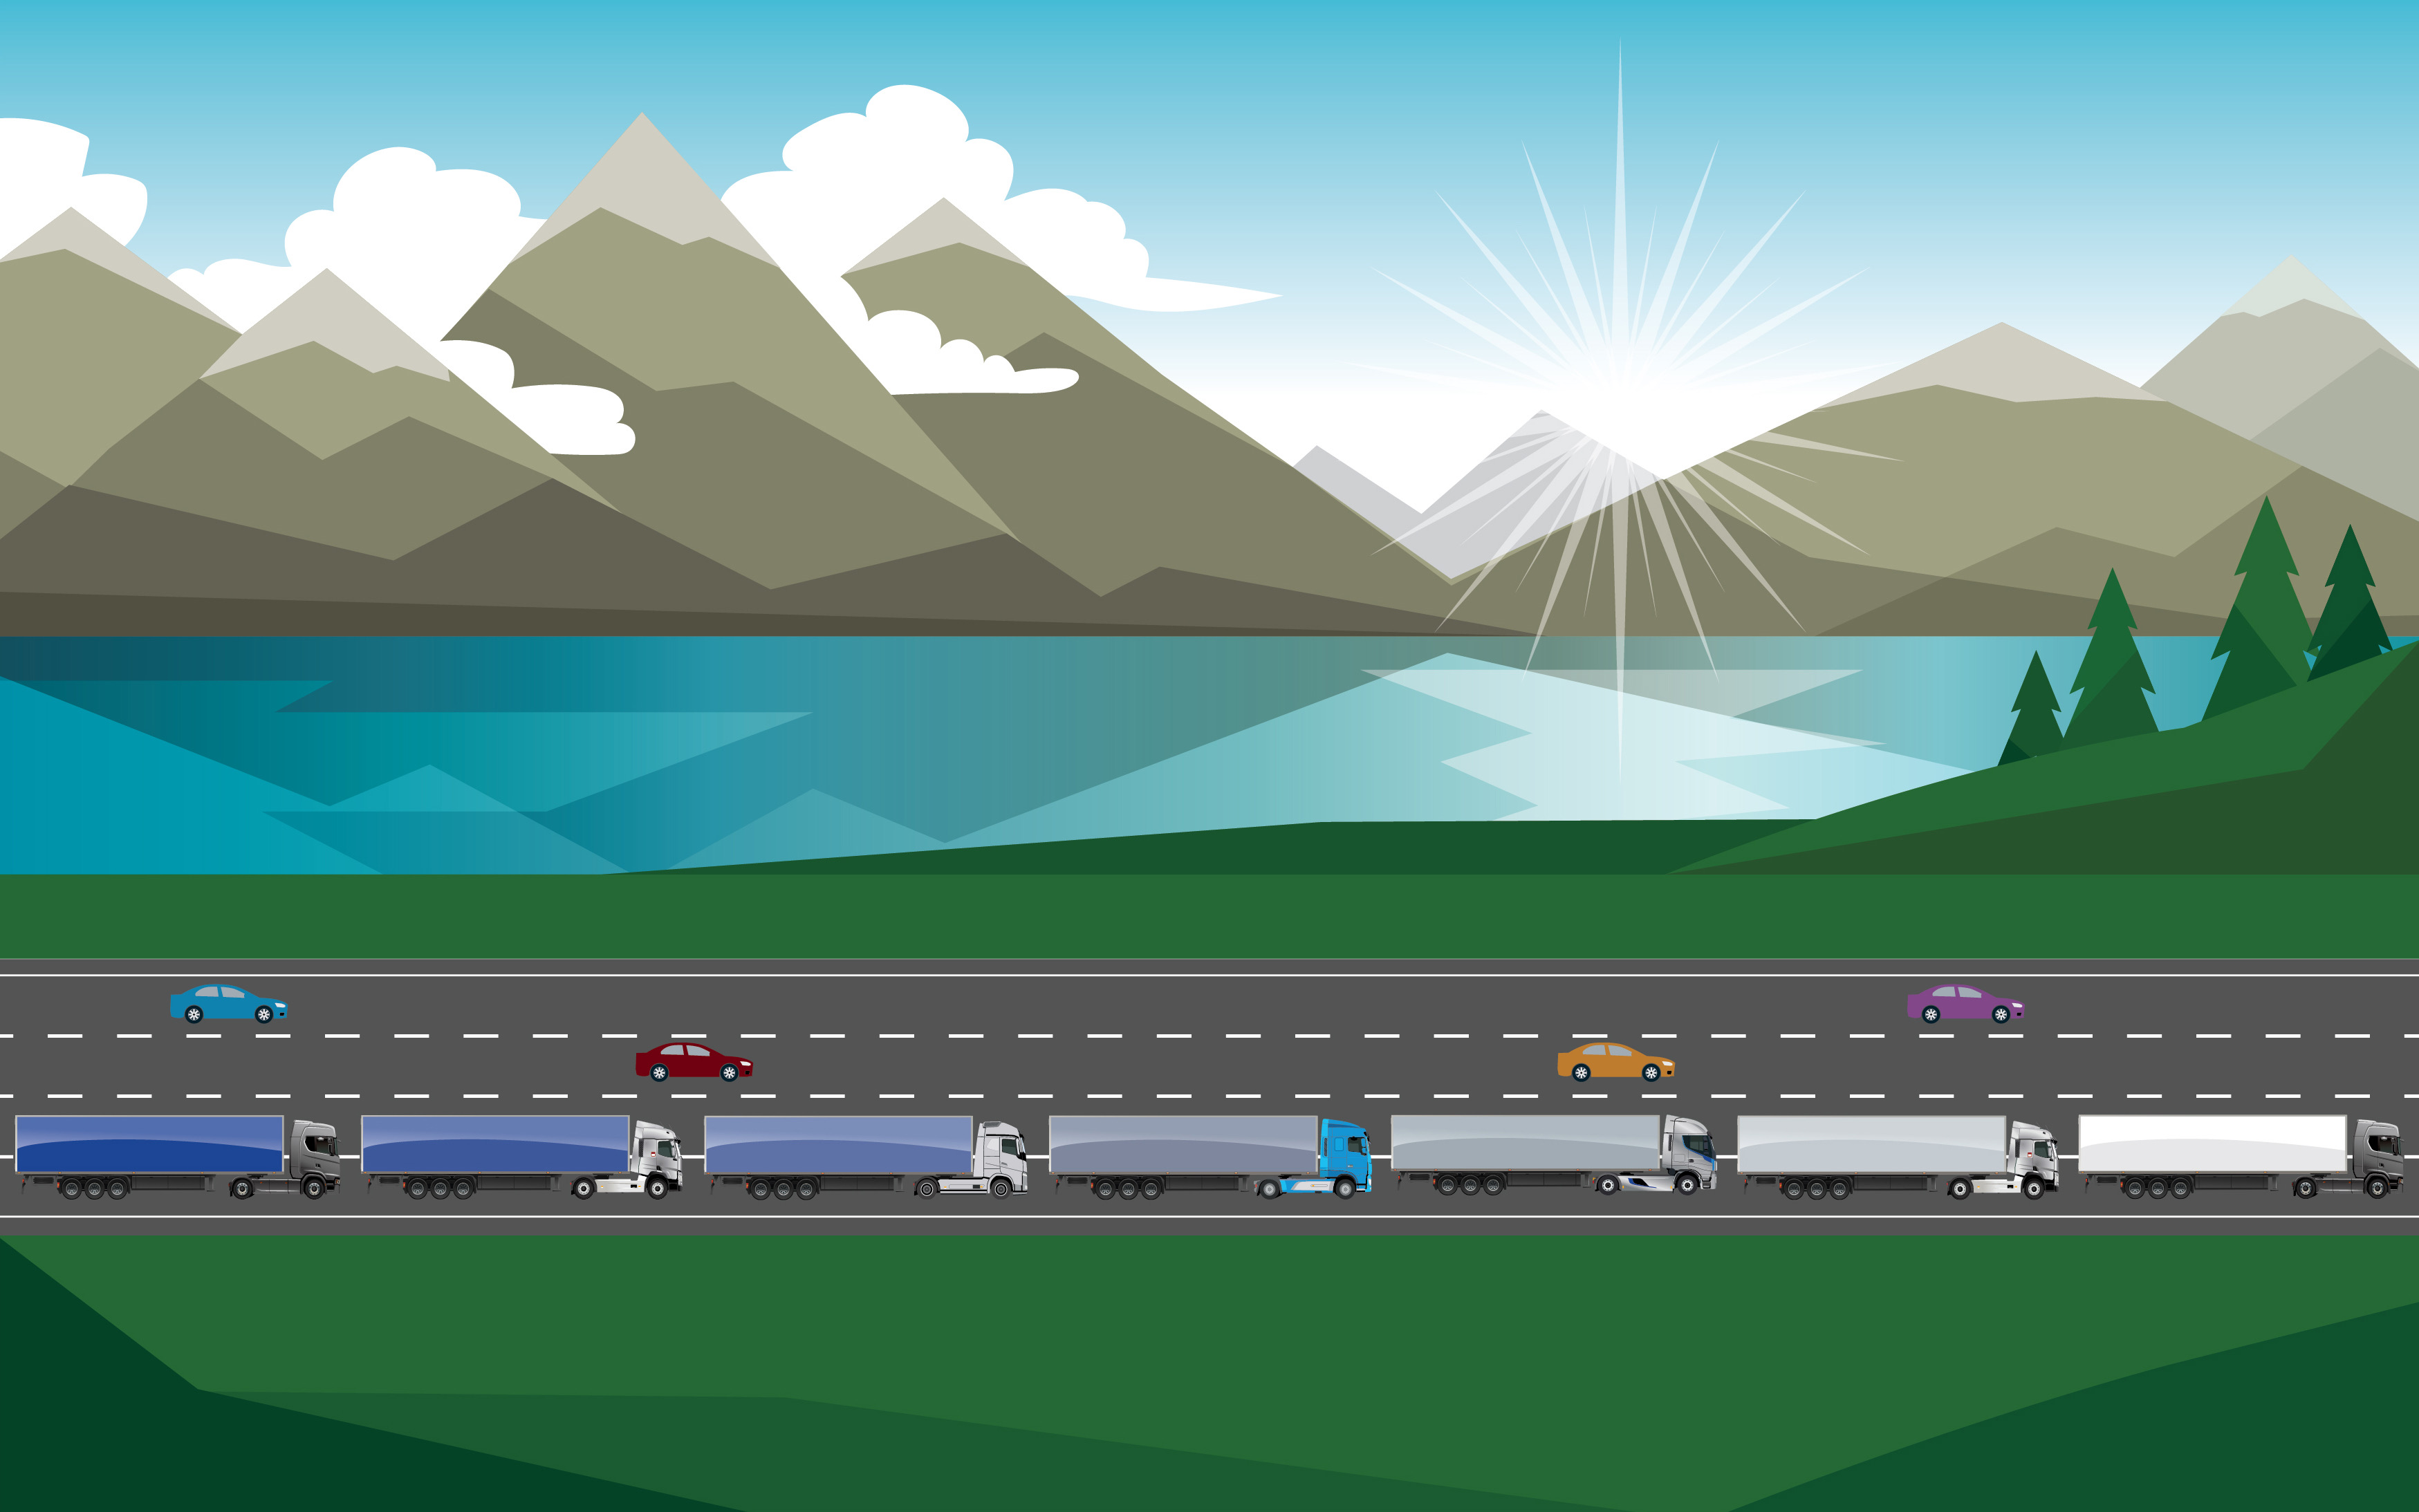 Platooning ENSEMBLE is now an animated video!